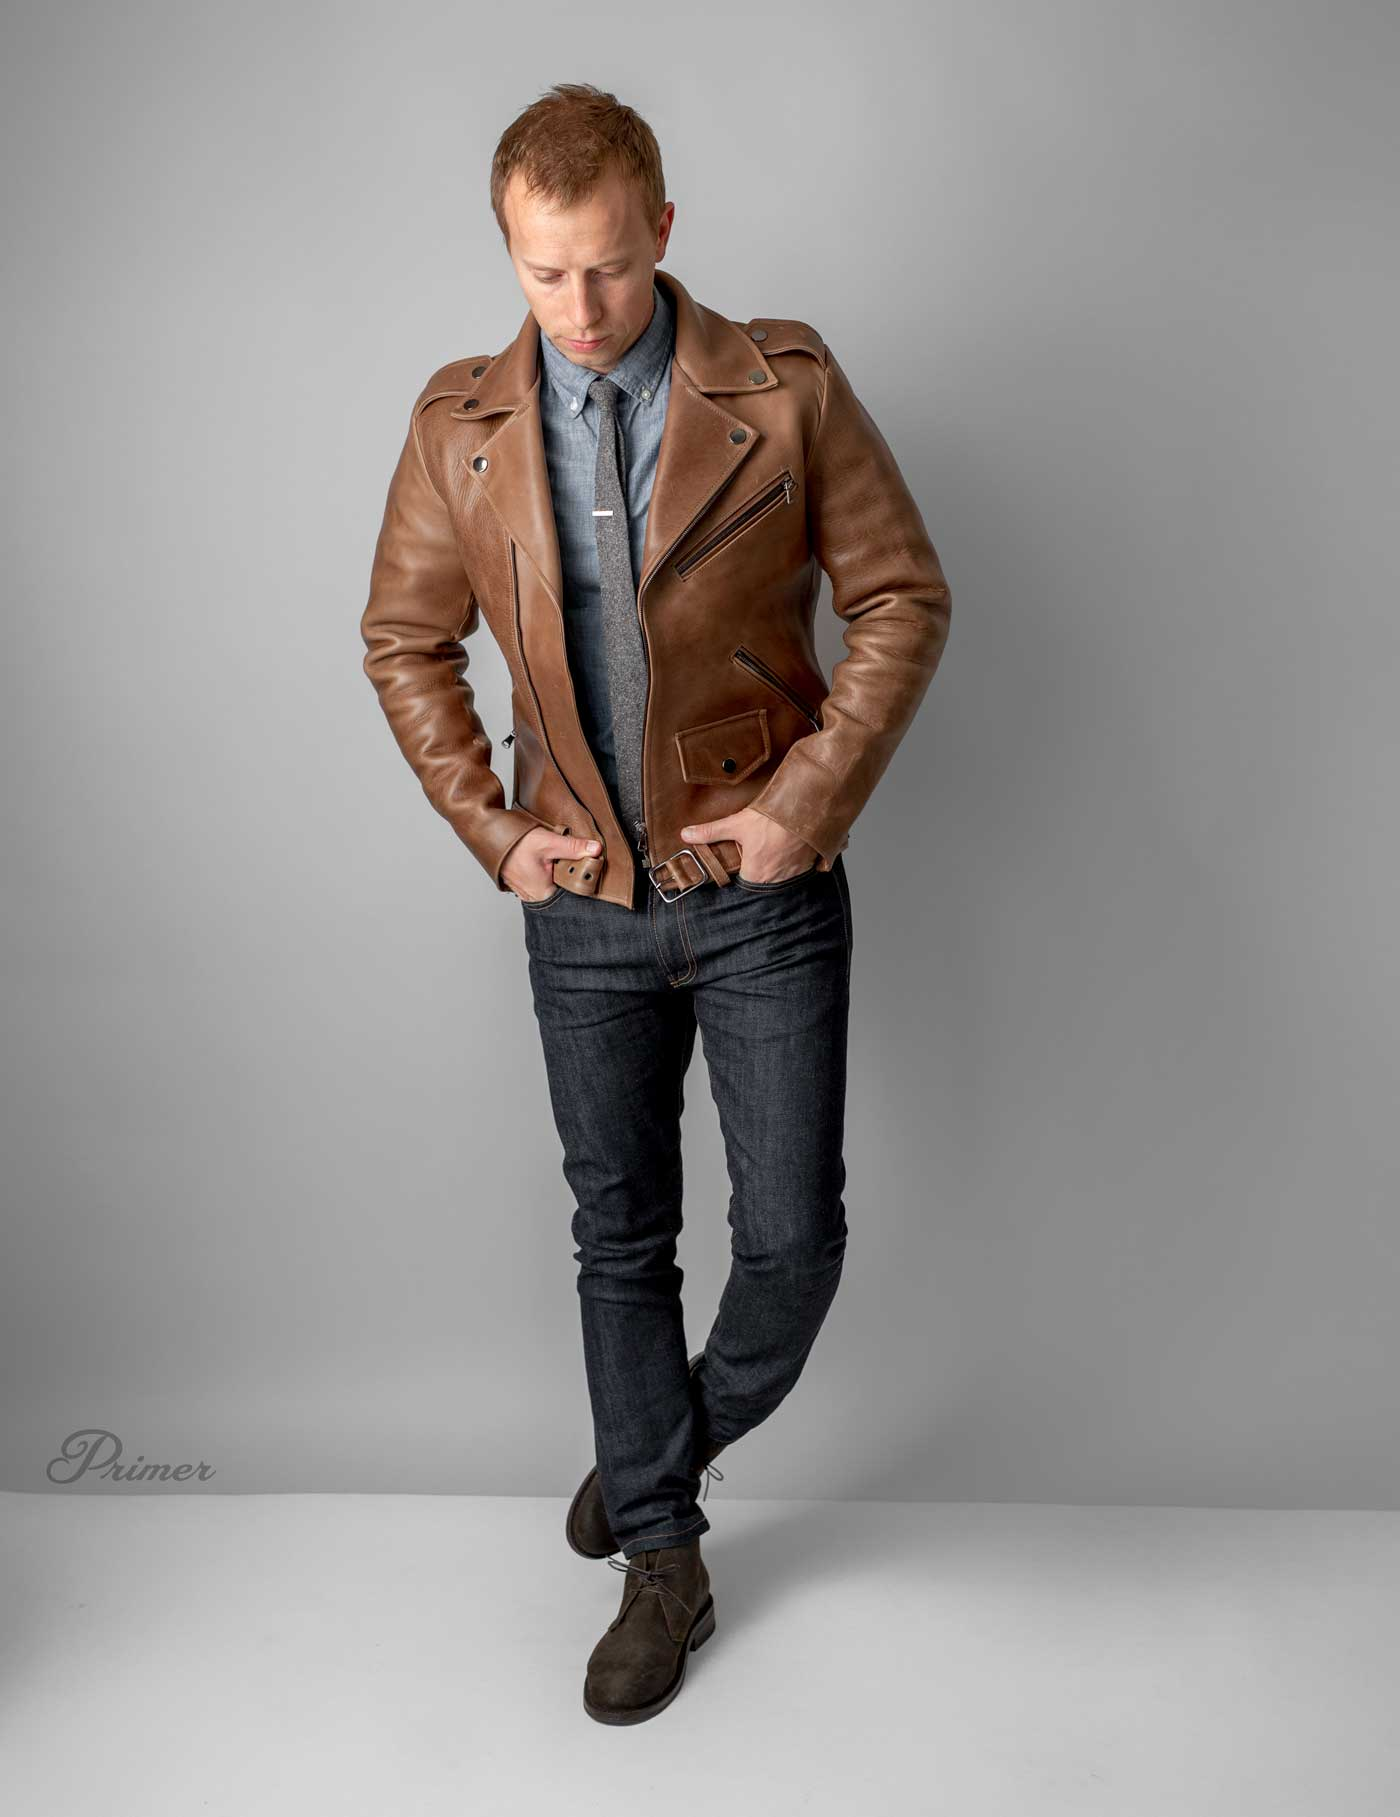 brown leather motorcyle jacket with jeans and tie